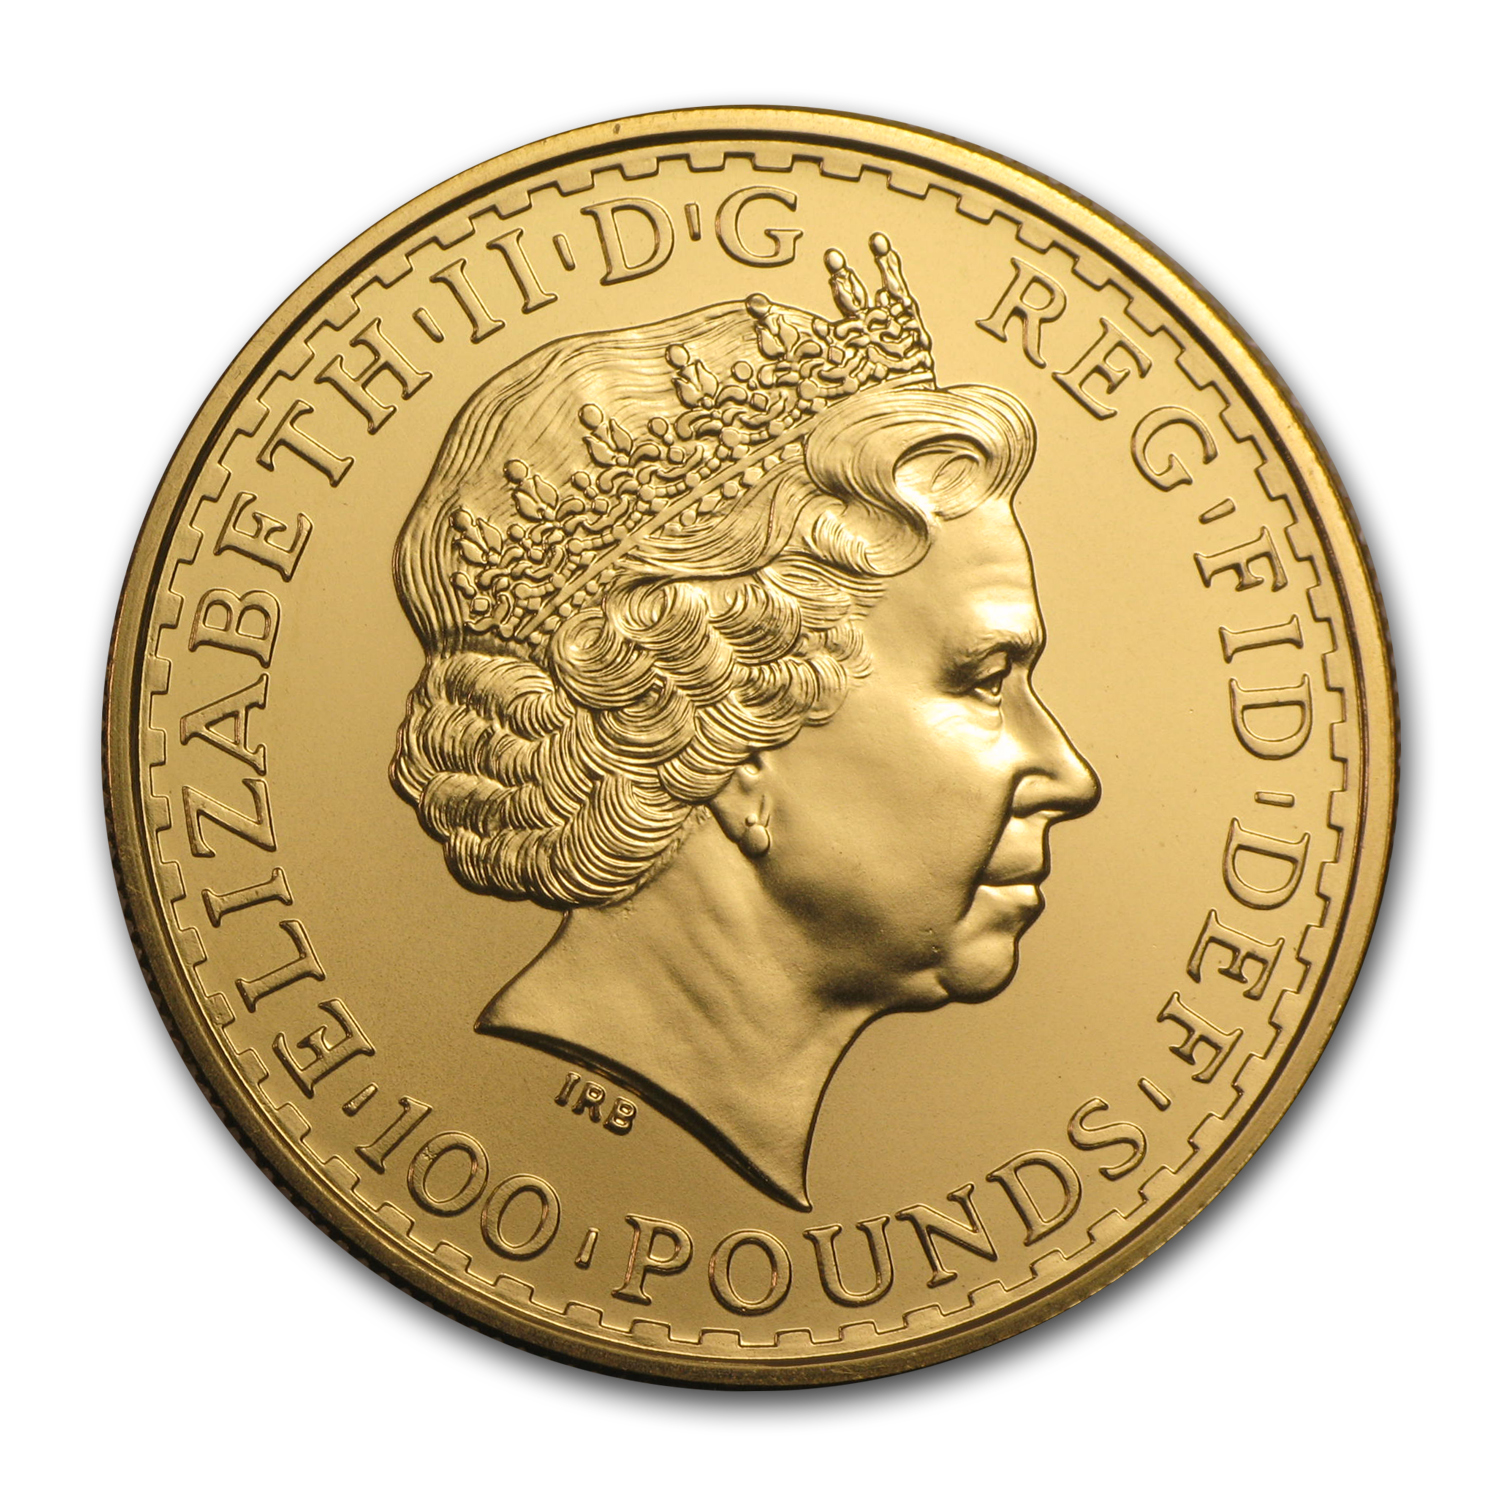 2010 Great Britain 1 oz Gold Britannia BU